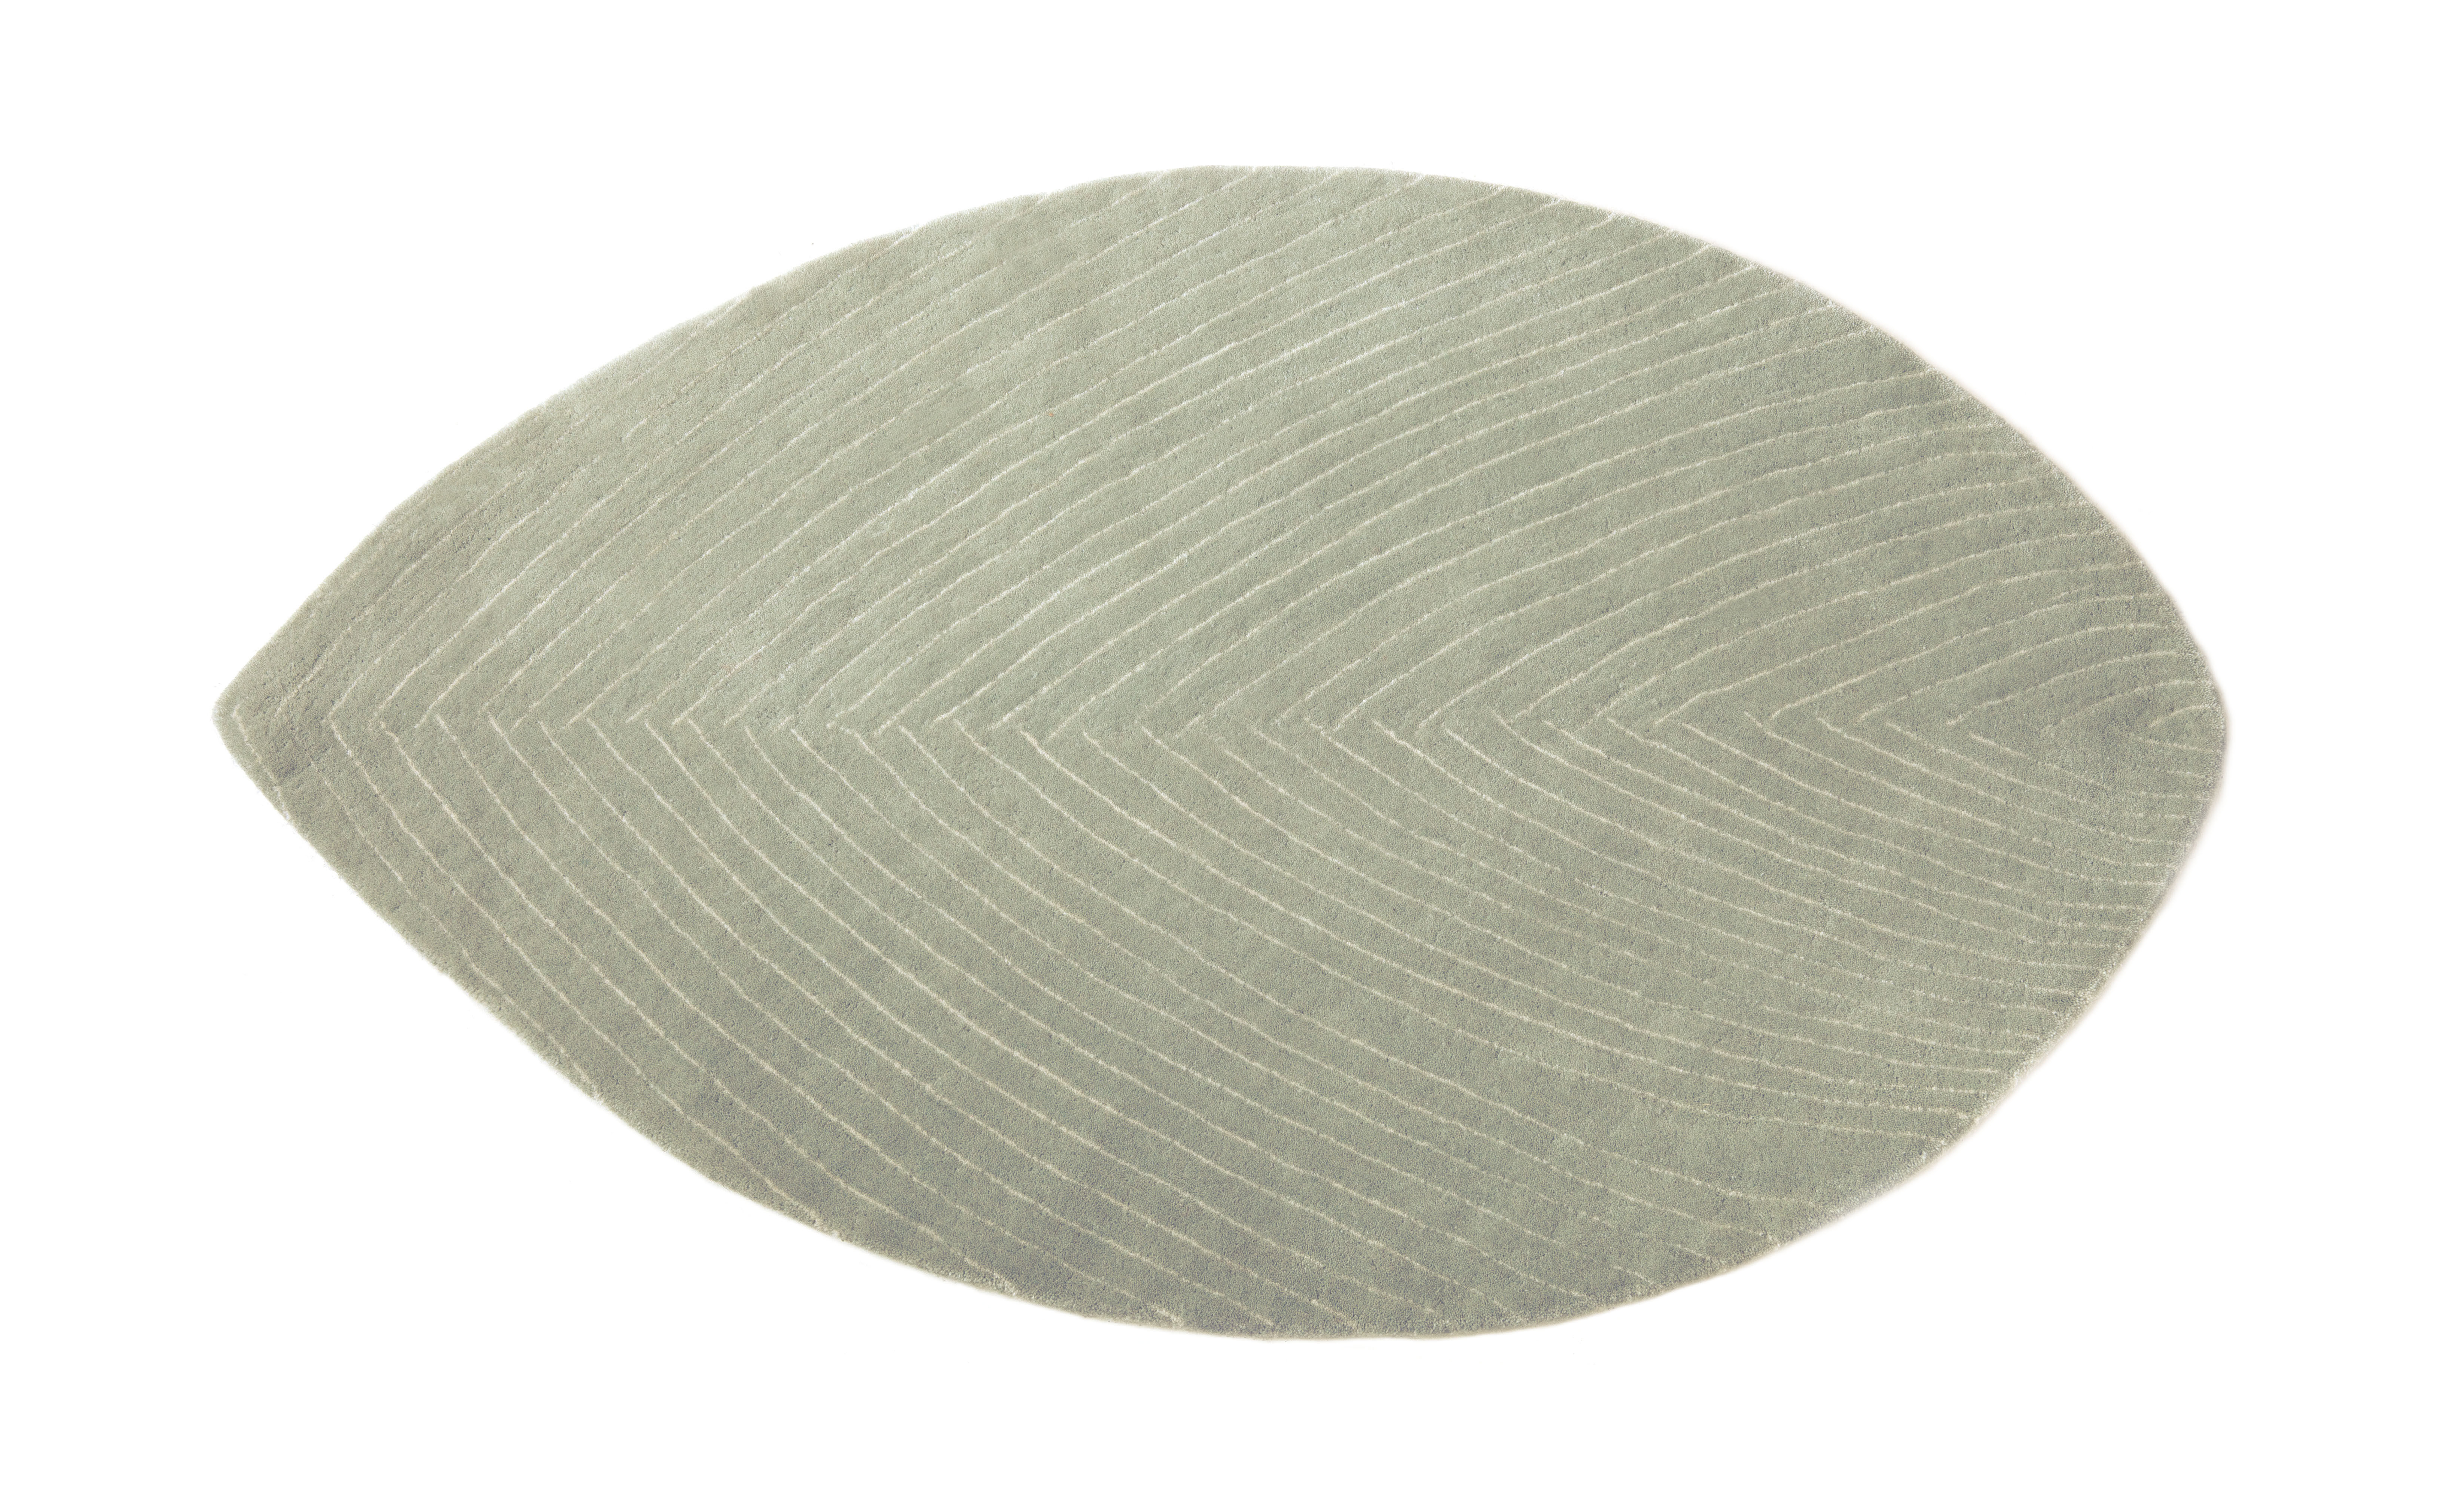 Decoration - Rugs - Quill Small Rug - 78 x 120 cm by Nanimarquina - Rainy grey - Virgin wool